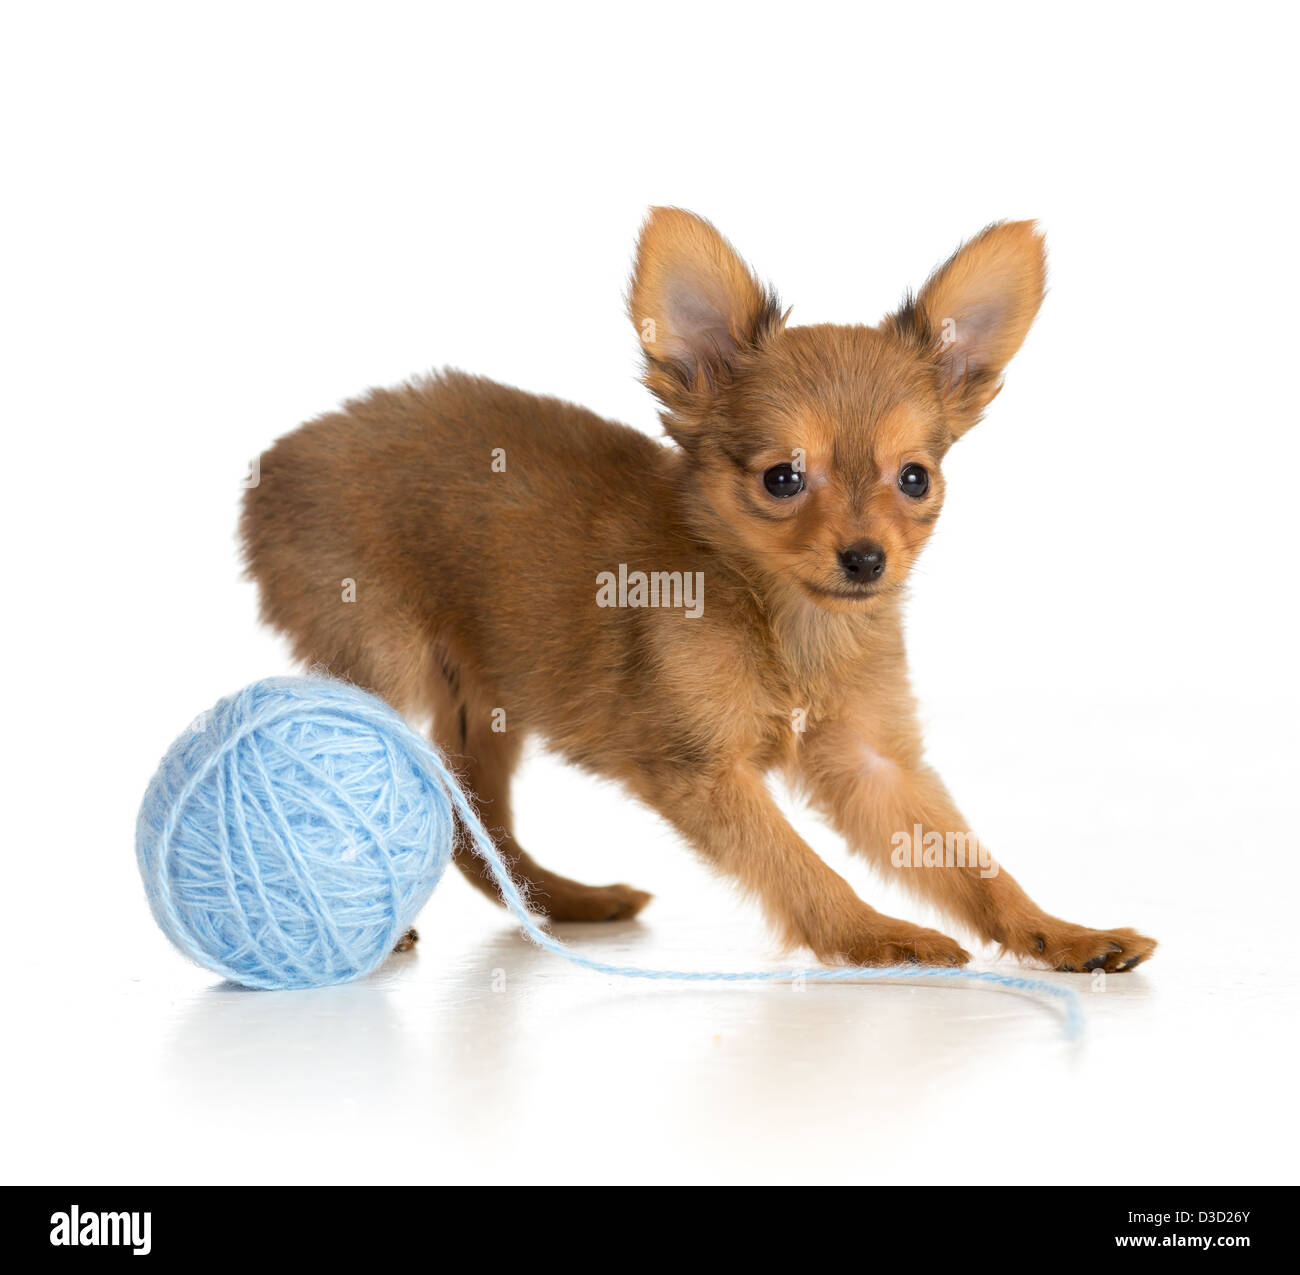 Russian toy terrier puppy playing wool ball - Stock Image